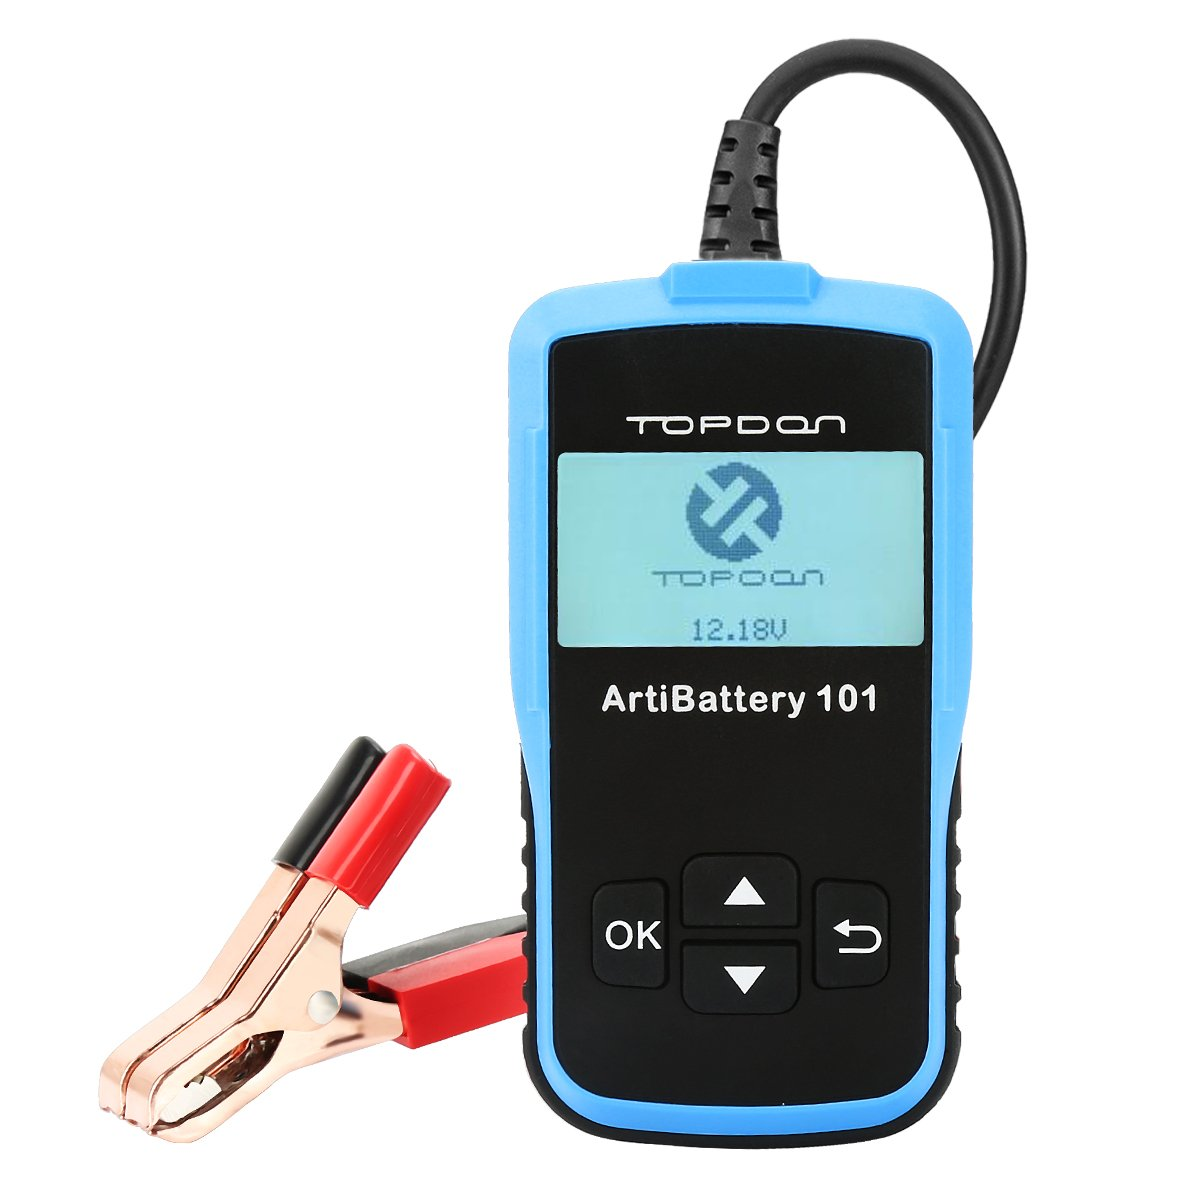 Car Battery Tester, Topdon ArtiBattery101 12V 100-2000 CCA Automotive Analyzer-Cranking Test, Charging Test and Battery Test for Battery System